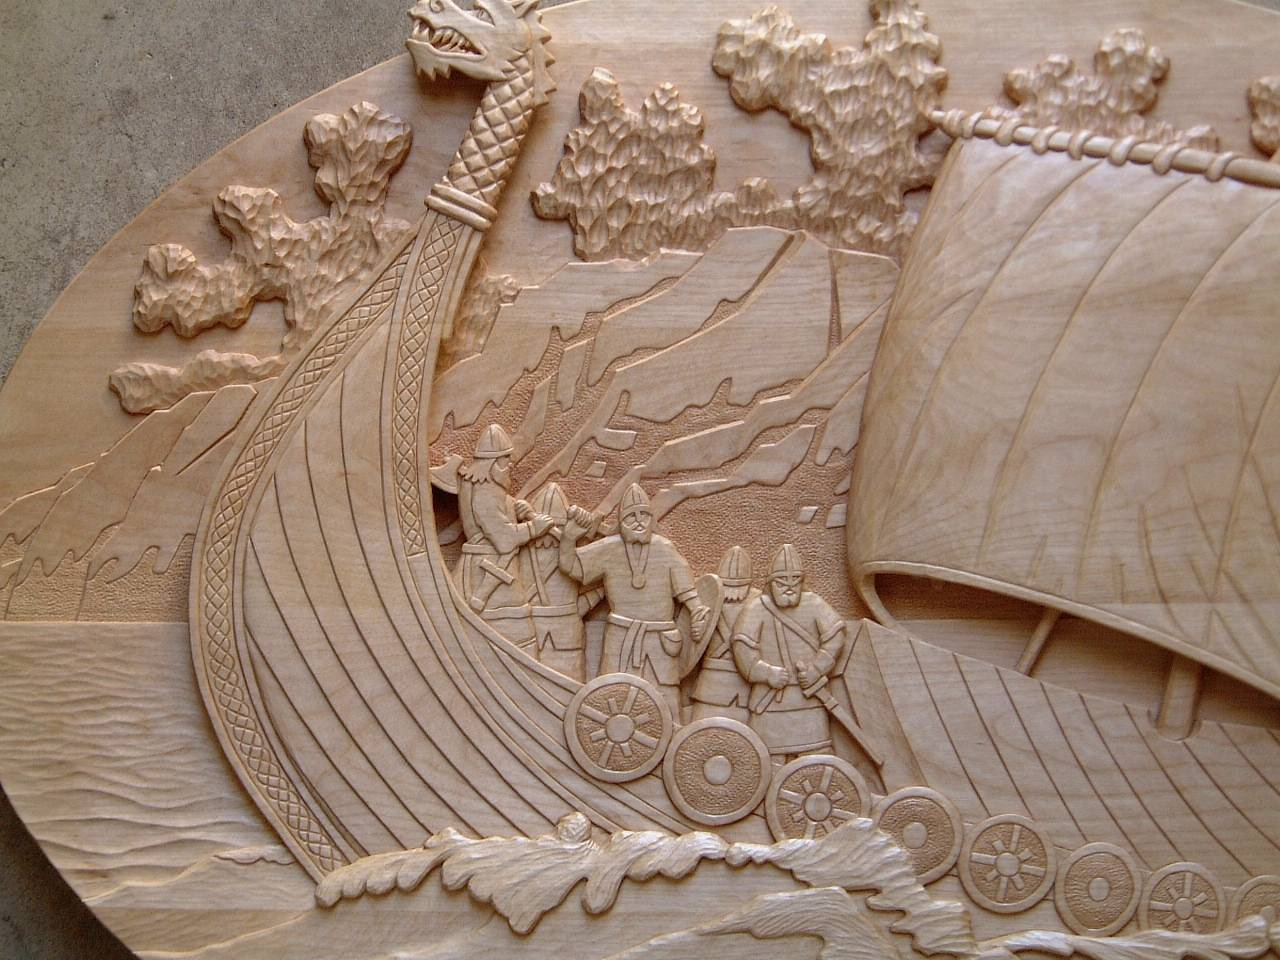 Relief carving wikipedia